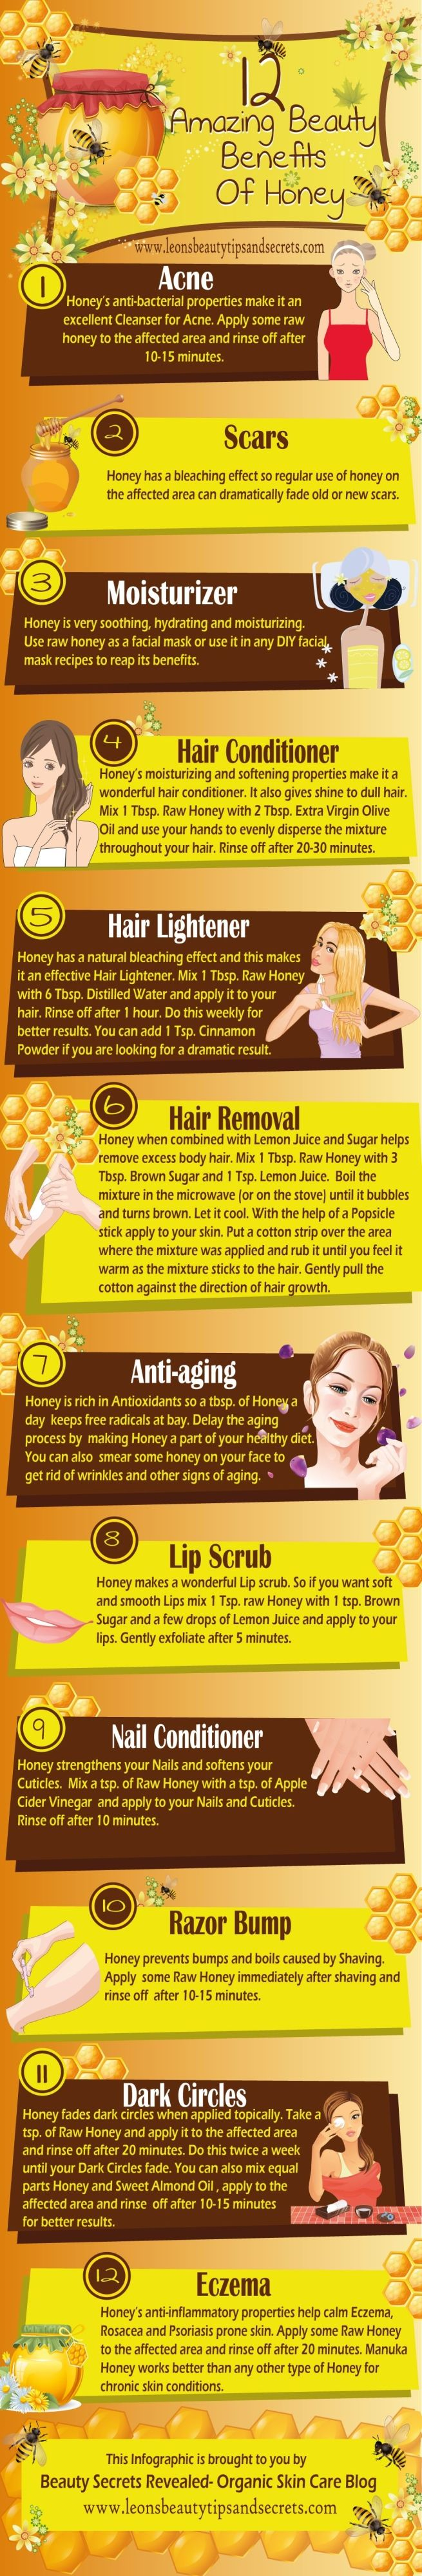 The amazing beauty benefits of honey